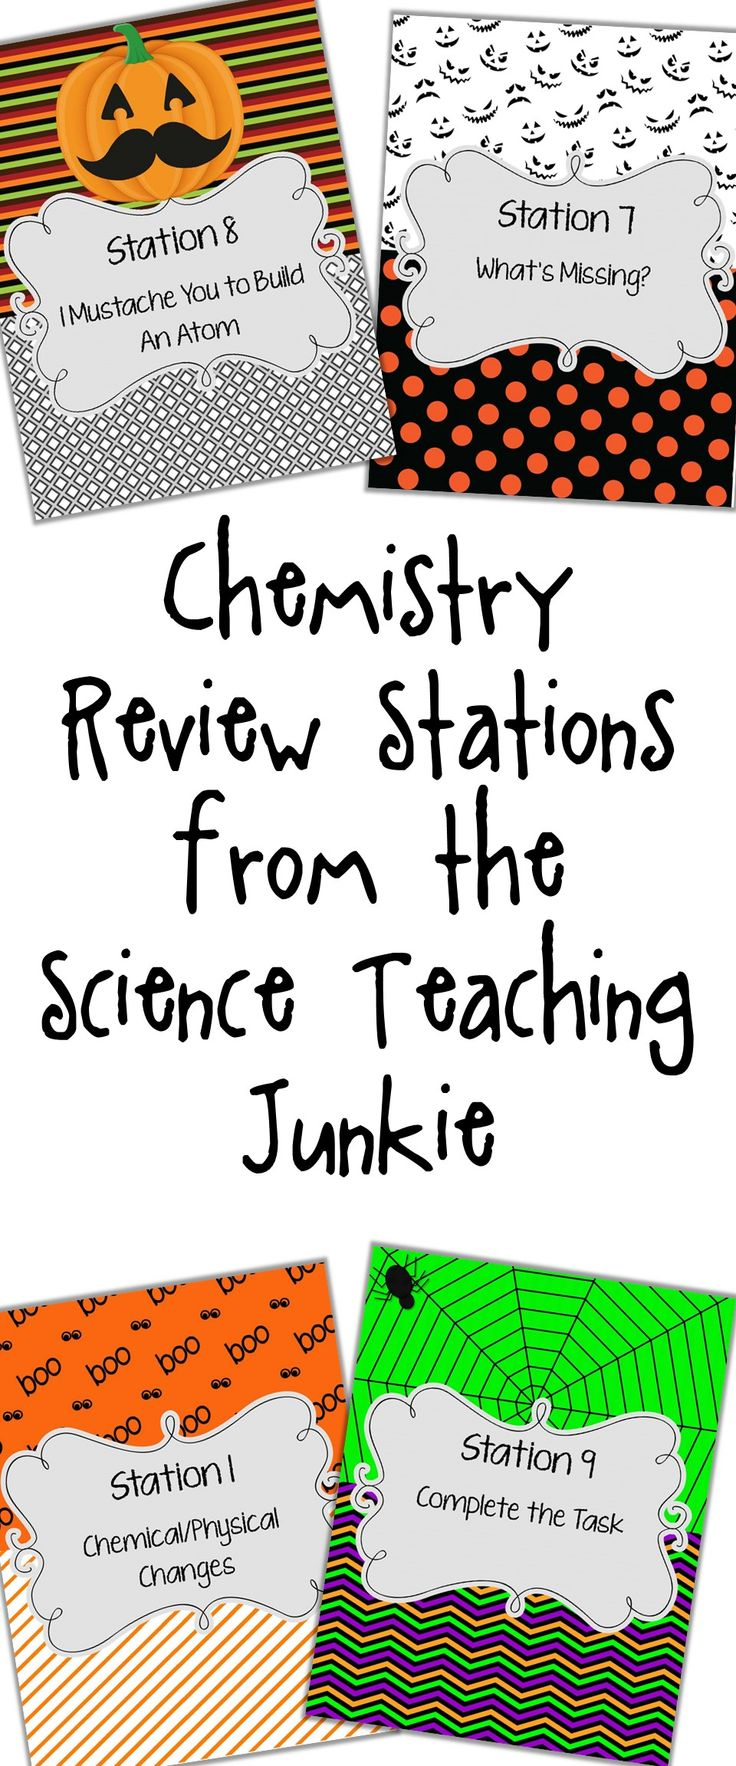 Worksheets 1000 Unbalanced Chemical Equation 1000 images about chemistry on pinterest equation science and set up an organized review with stations covering topics such as chemical physical changes